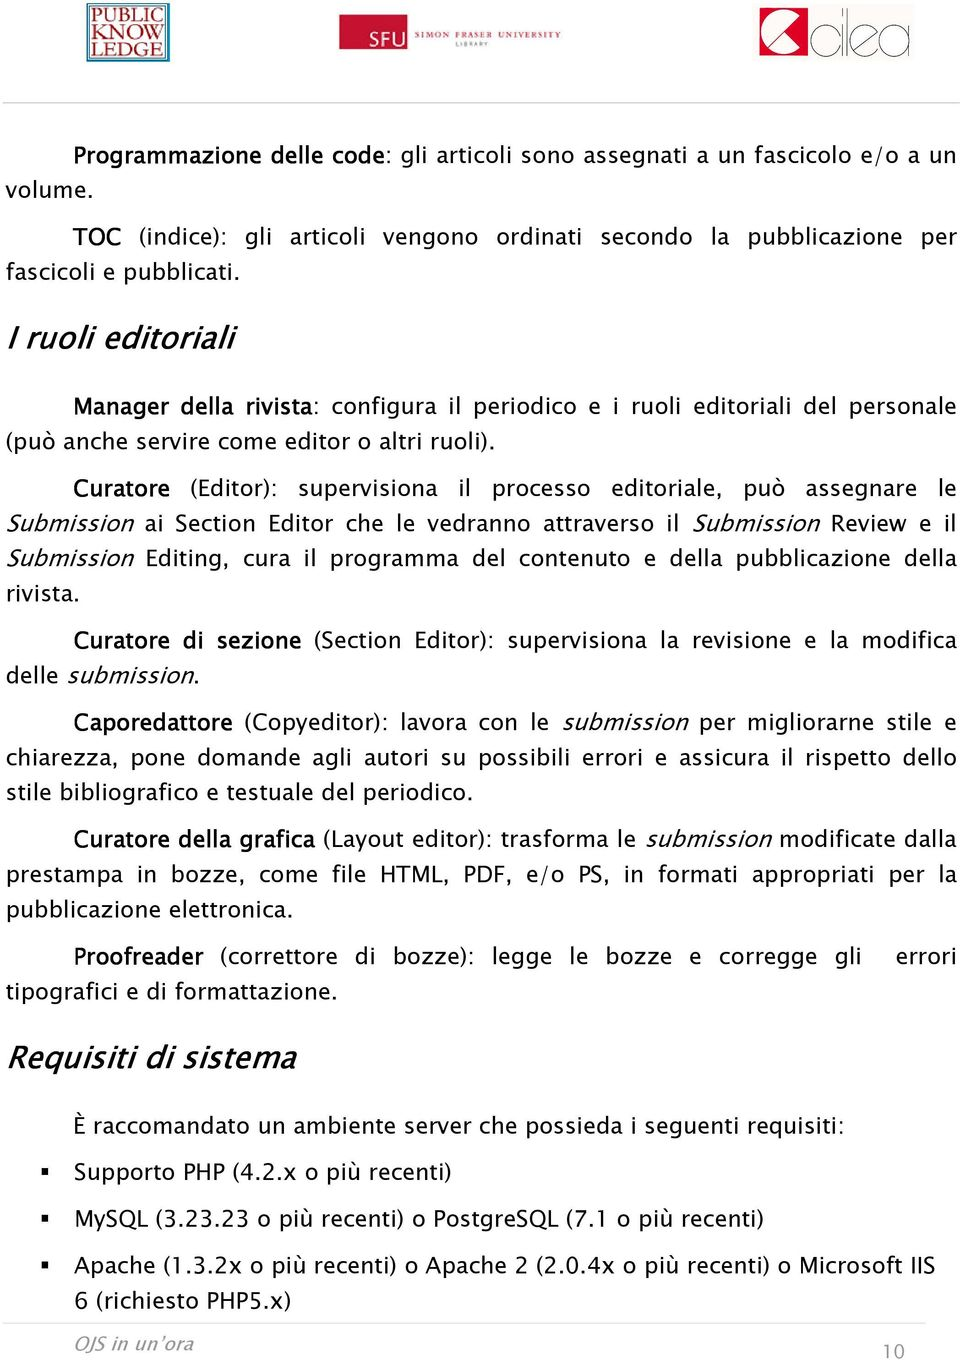 Curatore (Editor): supervisiona il processo editoriale, può assegnare le Submission ai Section Editor che le vedranno attraverso il Submission Review e il Submission Editing, cura il programma del